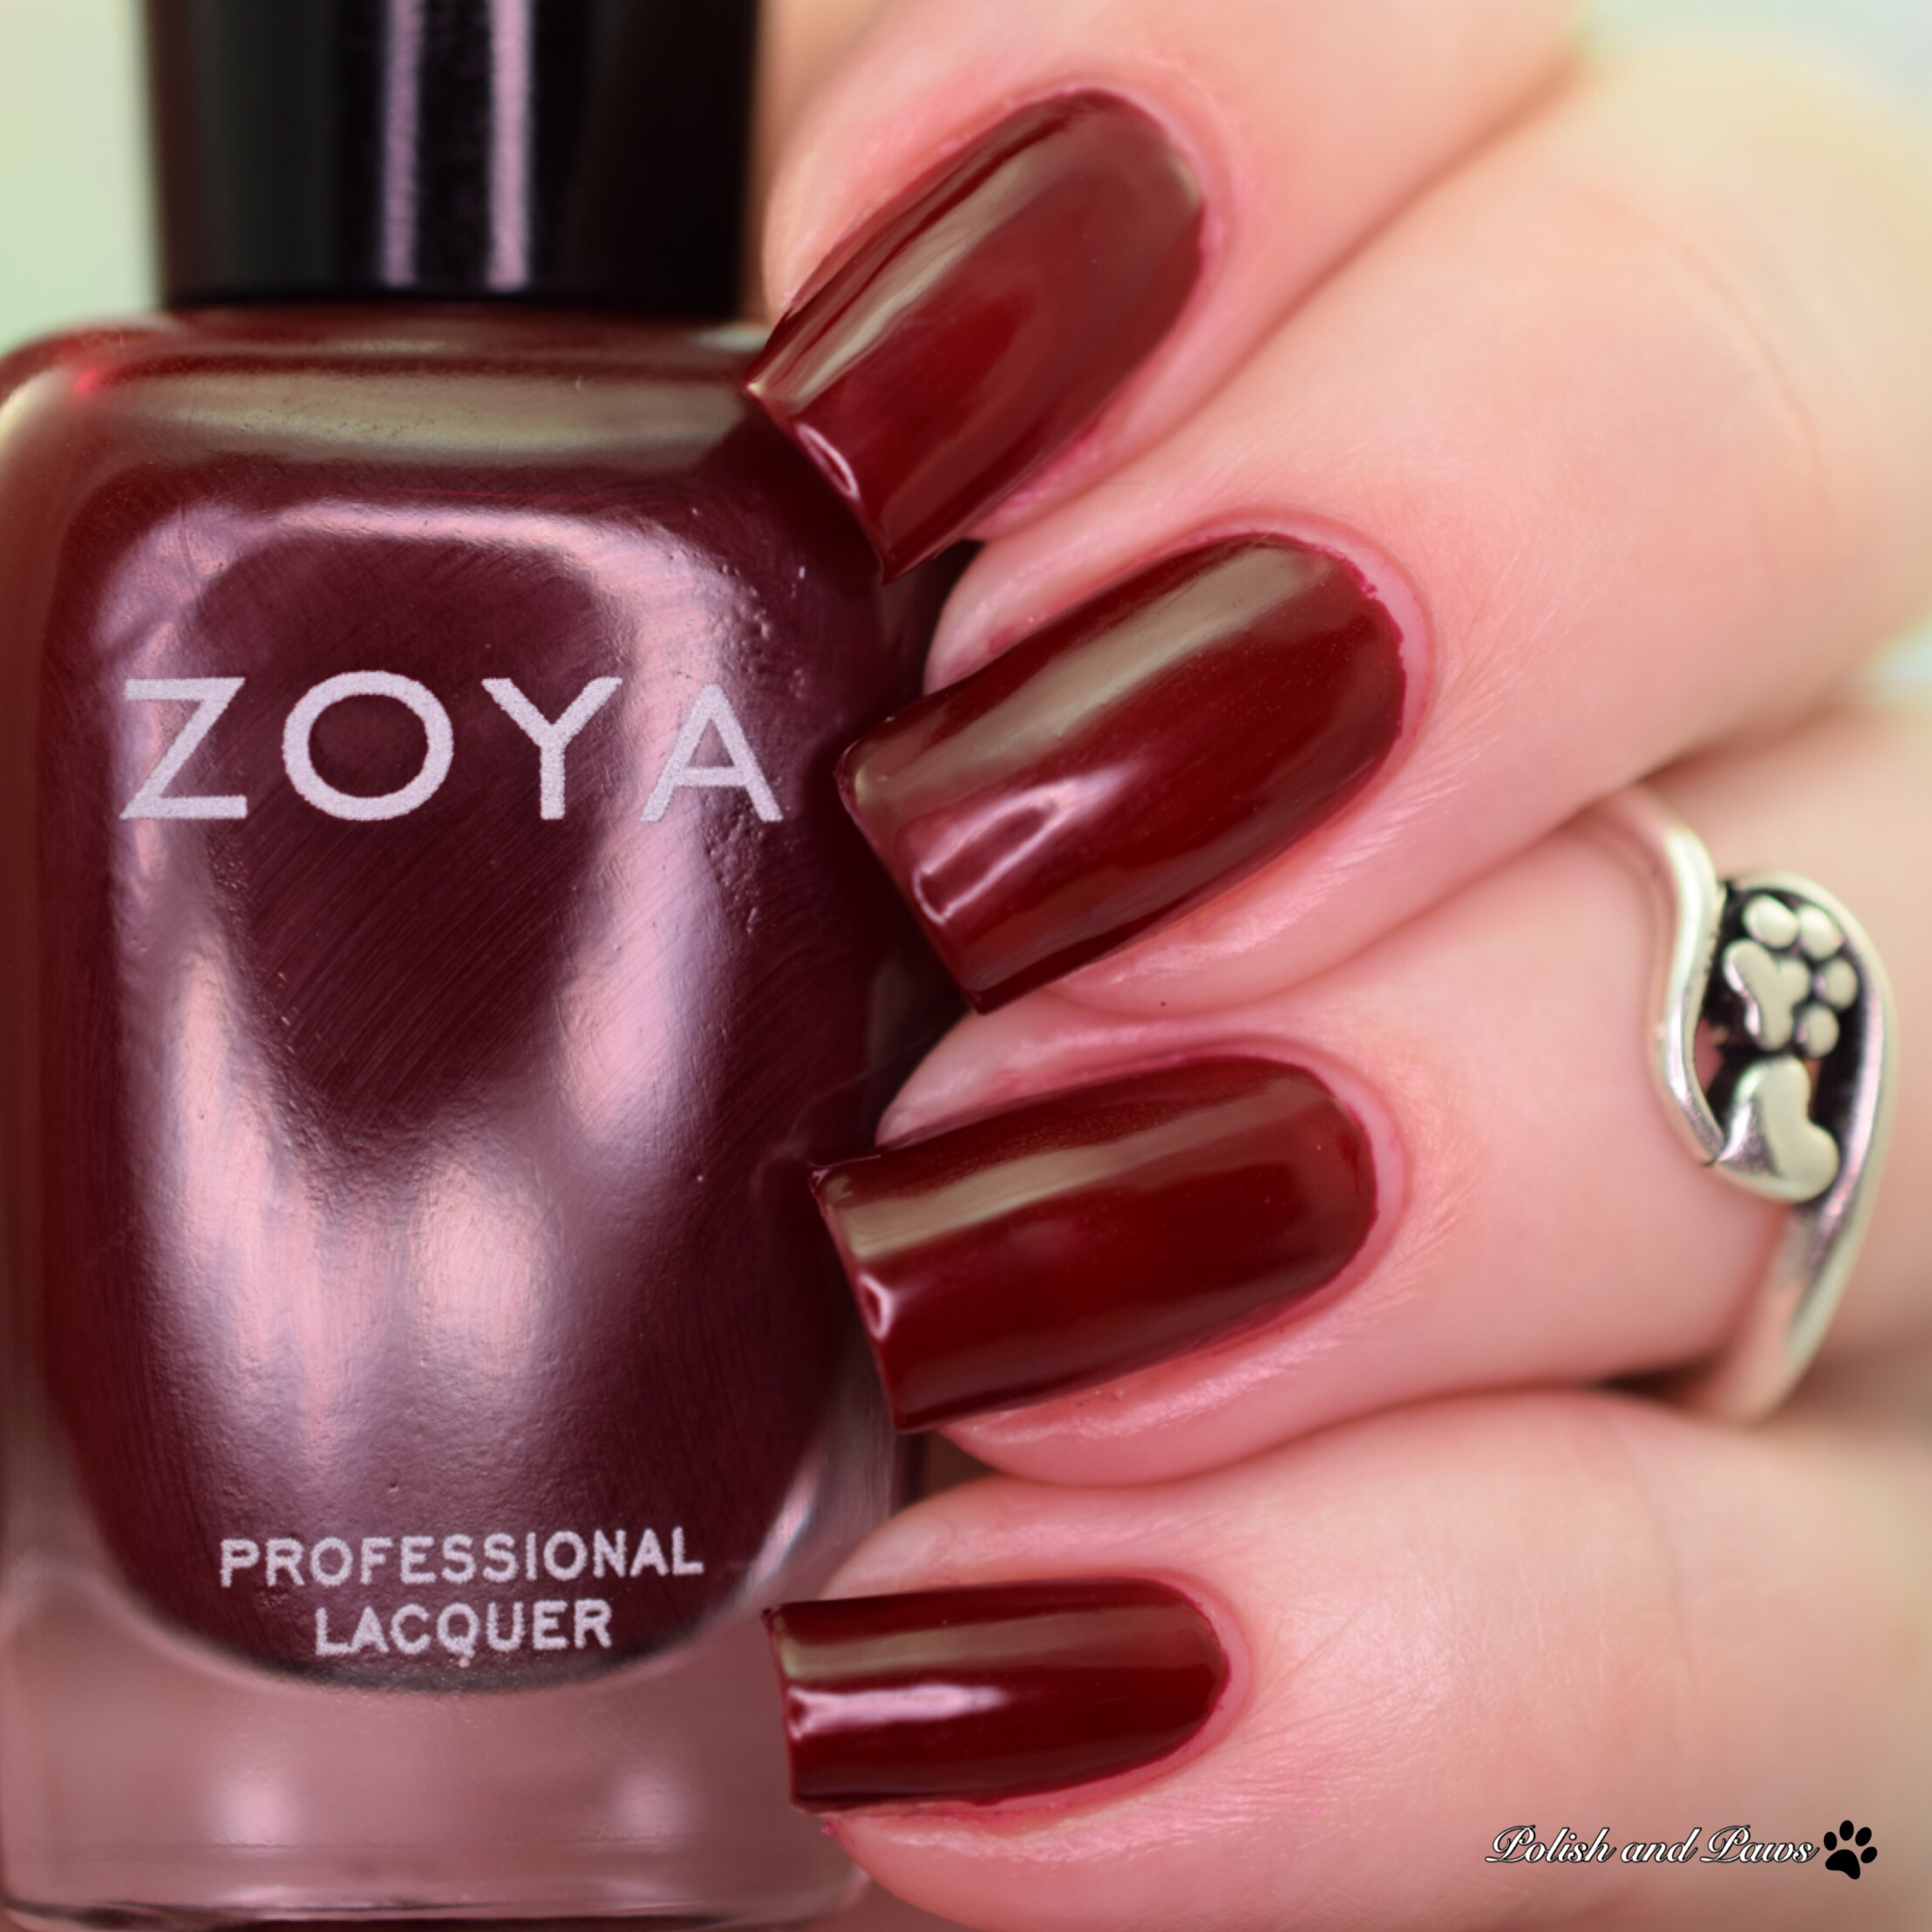 Zoya Tara Is Described As A Purple Plum With Balanced Tone Between Red And This Color Absolutely Stunning Shown One Coat Glossy